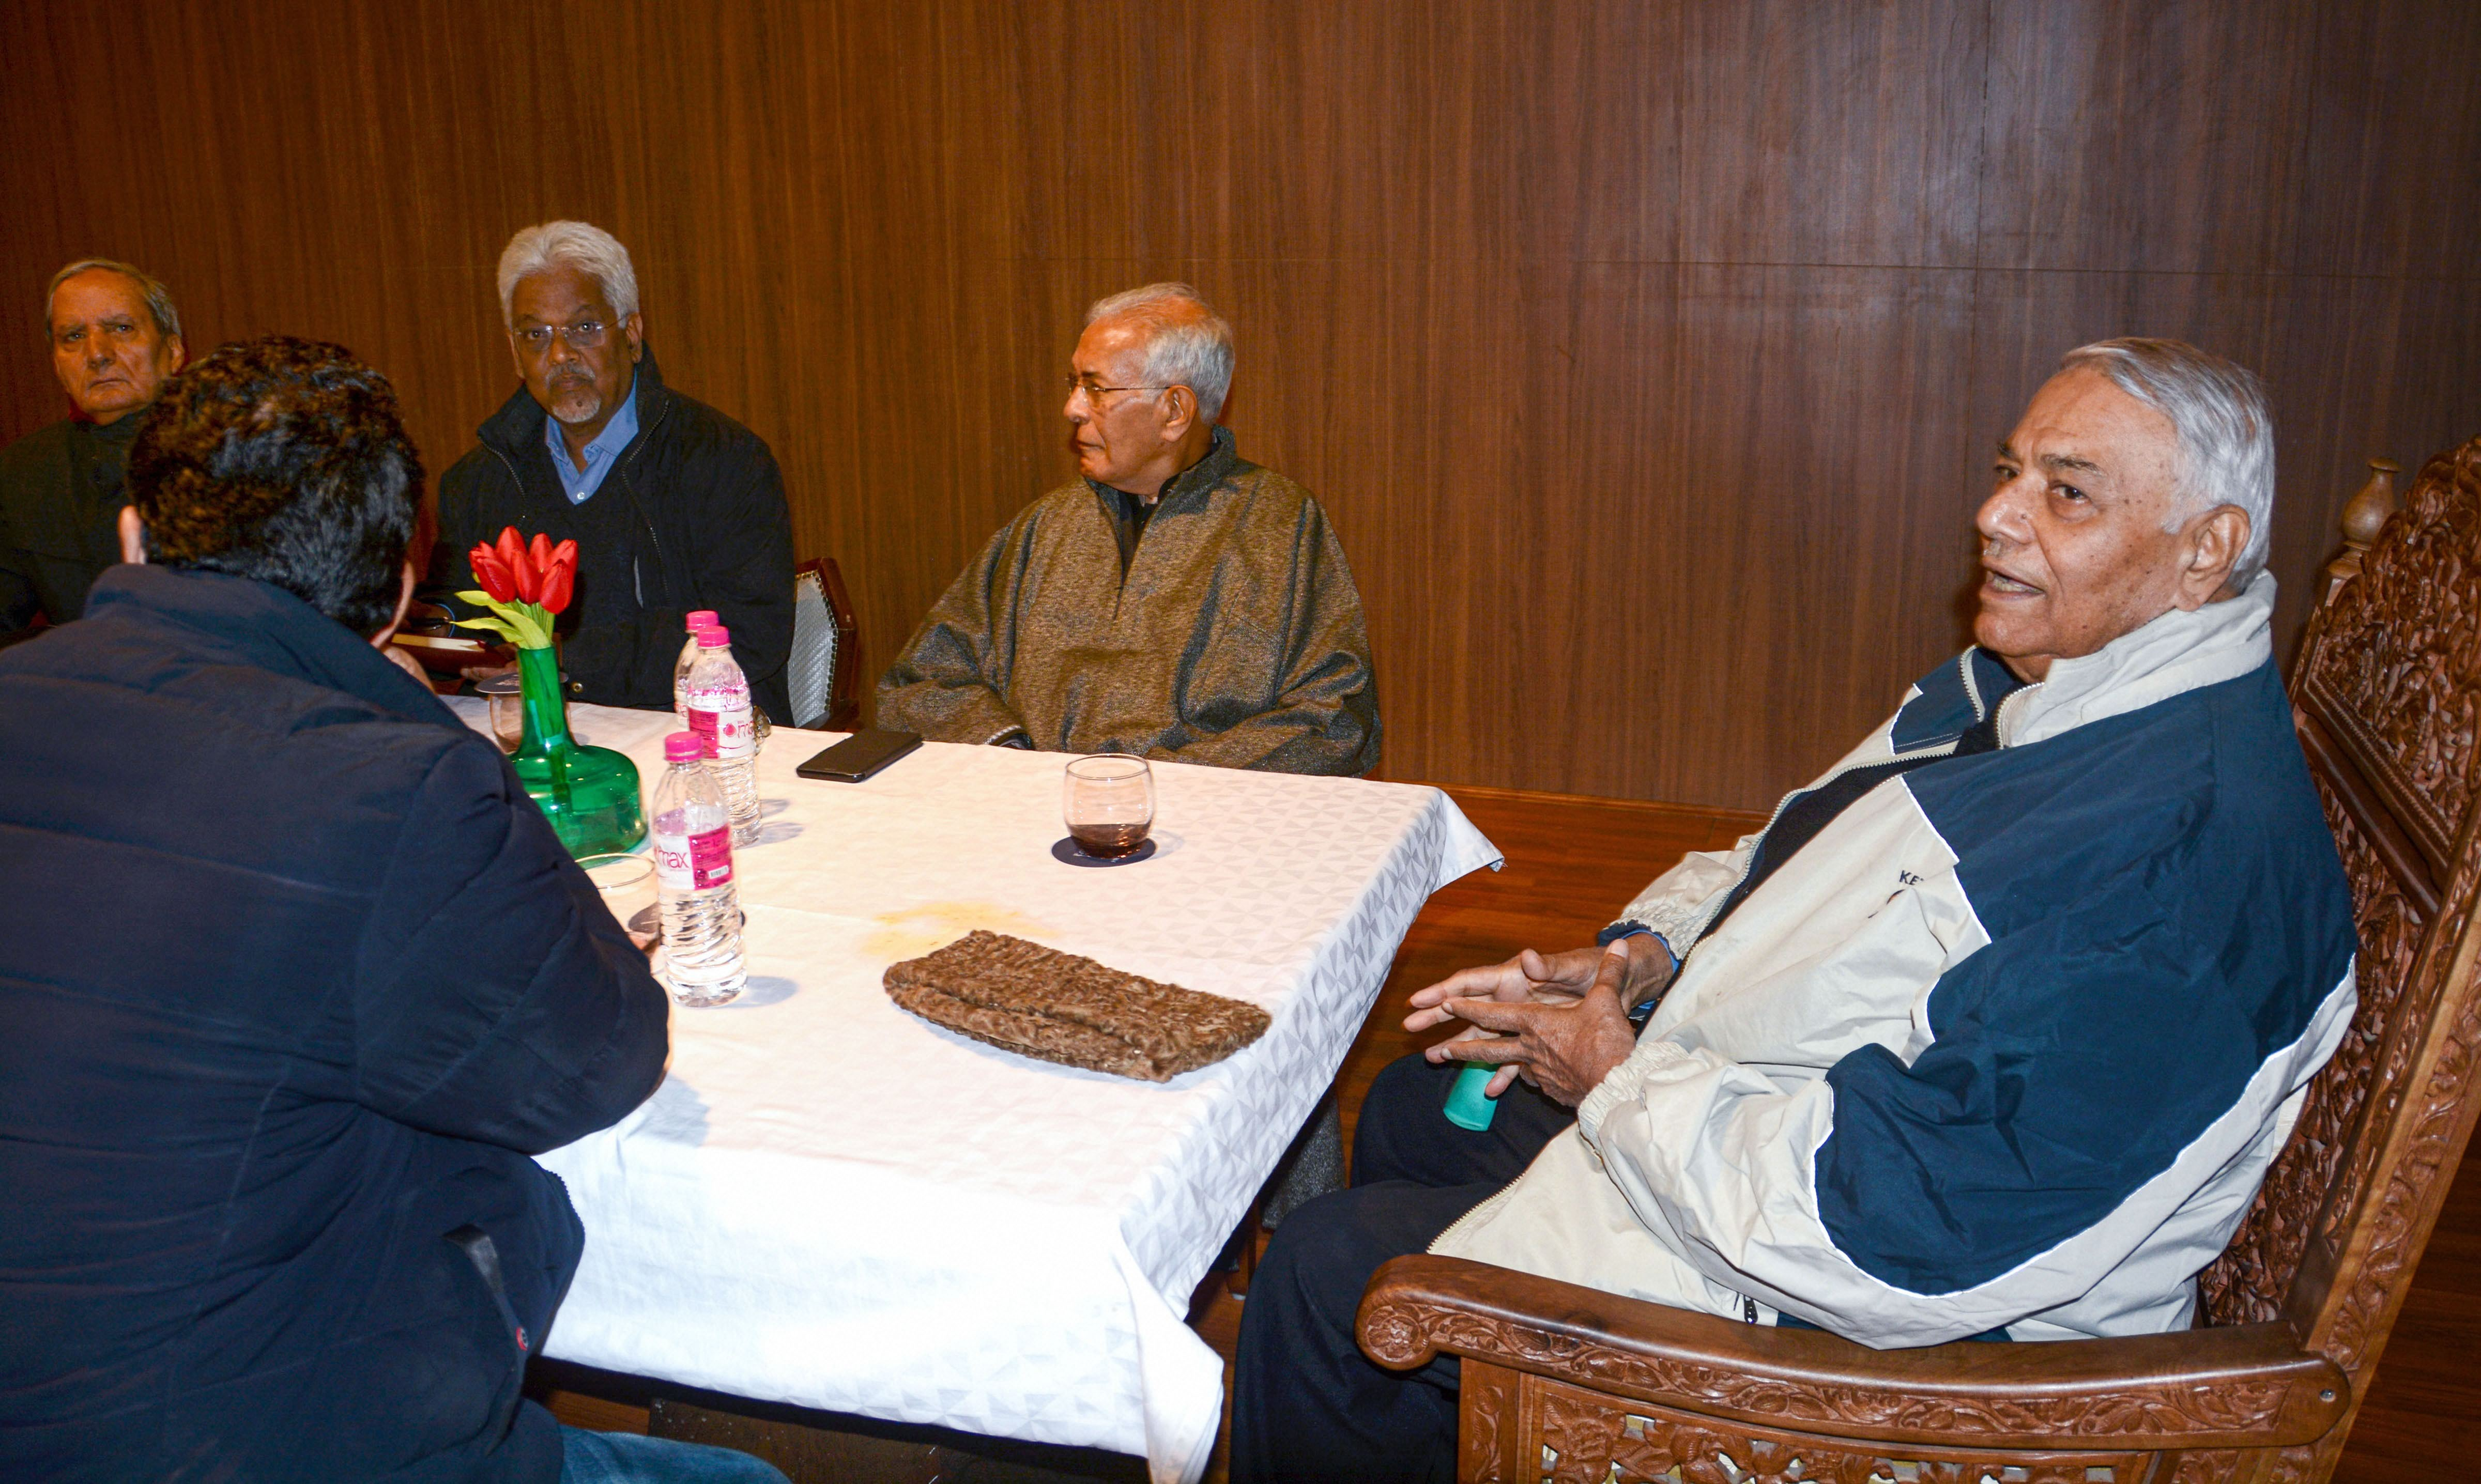 A delegation of Indian civil society group led by former Union finance minister Yashwant Sinha interacts with the members of Kashmir Chamber of Commerce and Industries to assess the situation in the Valley, in Srinagar, Friday, November 22, 2019.